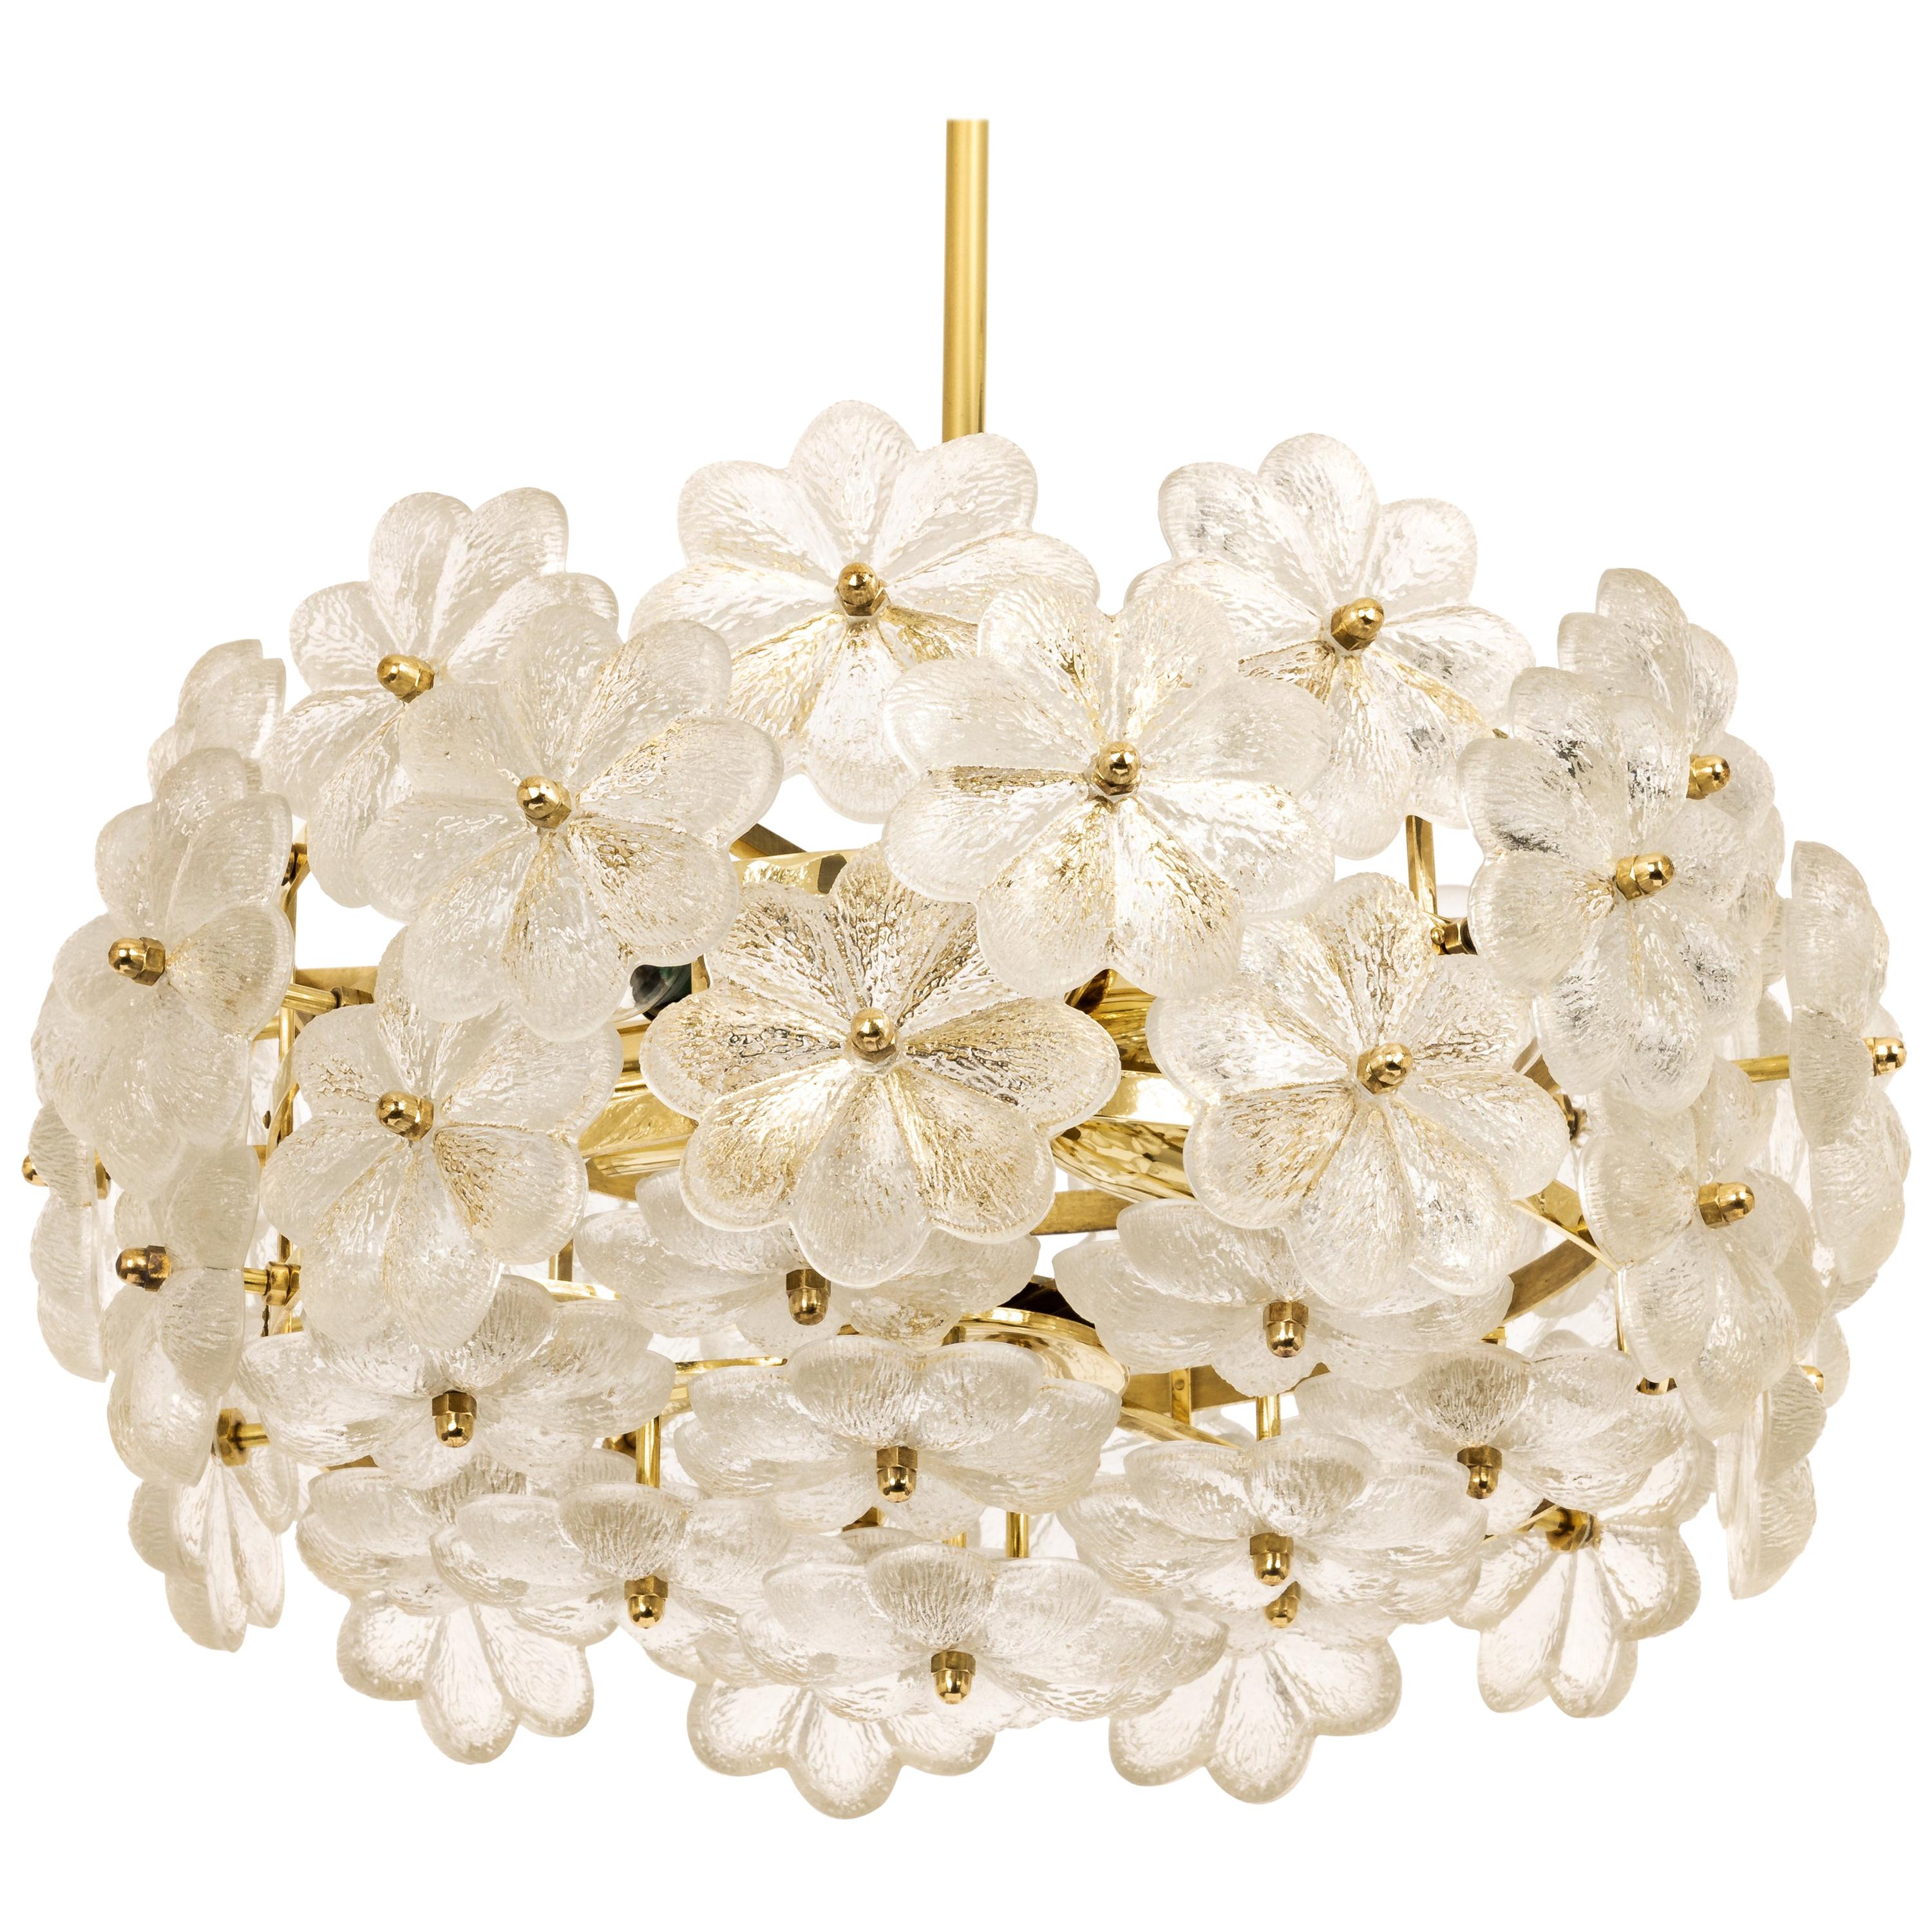 Stunning Crystal Glass Chandelier by Ernst Palme, Germany, 1970s